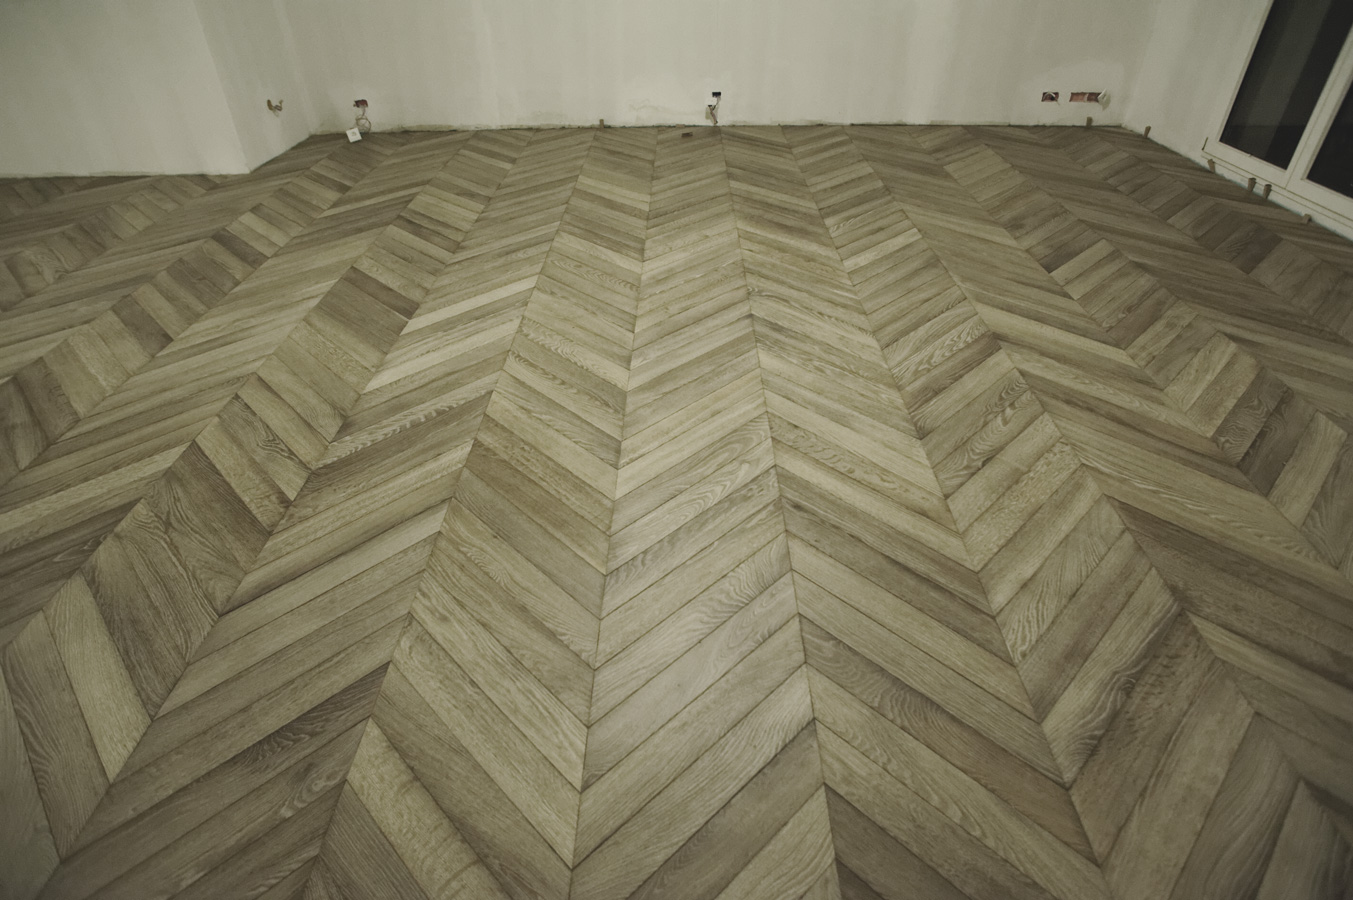 Overview of the parquet floor - Parquets de Tradition - #115